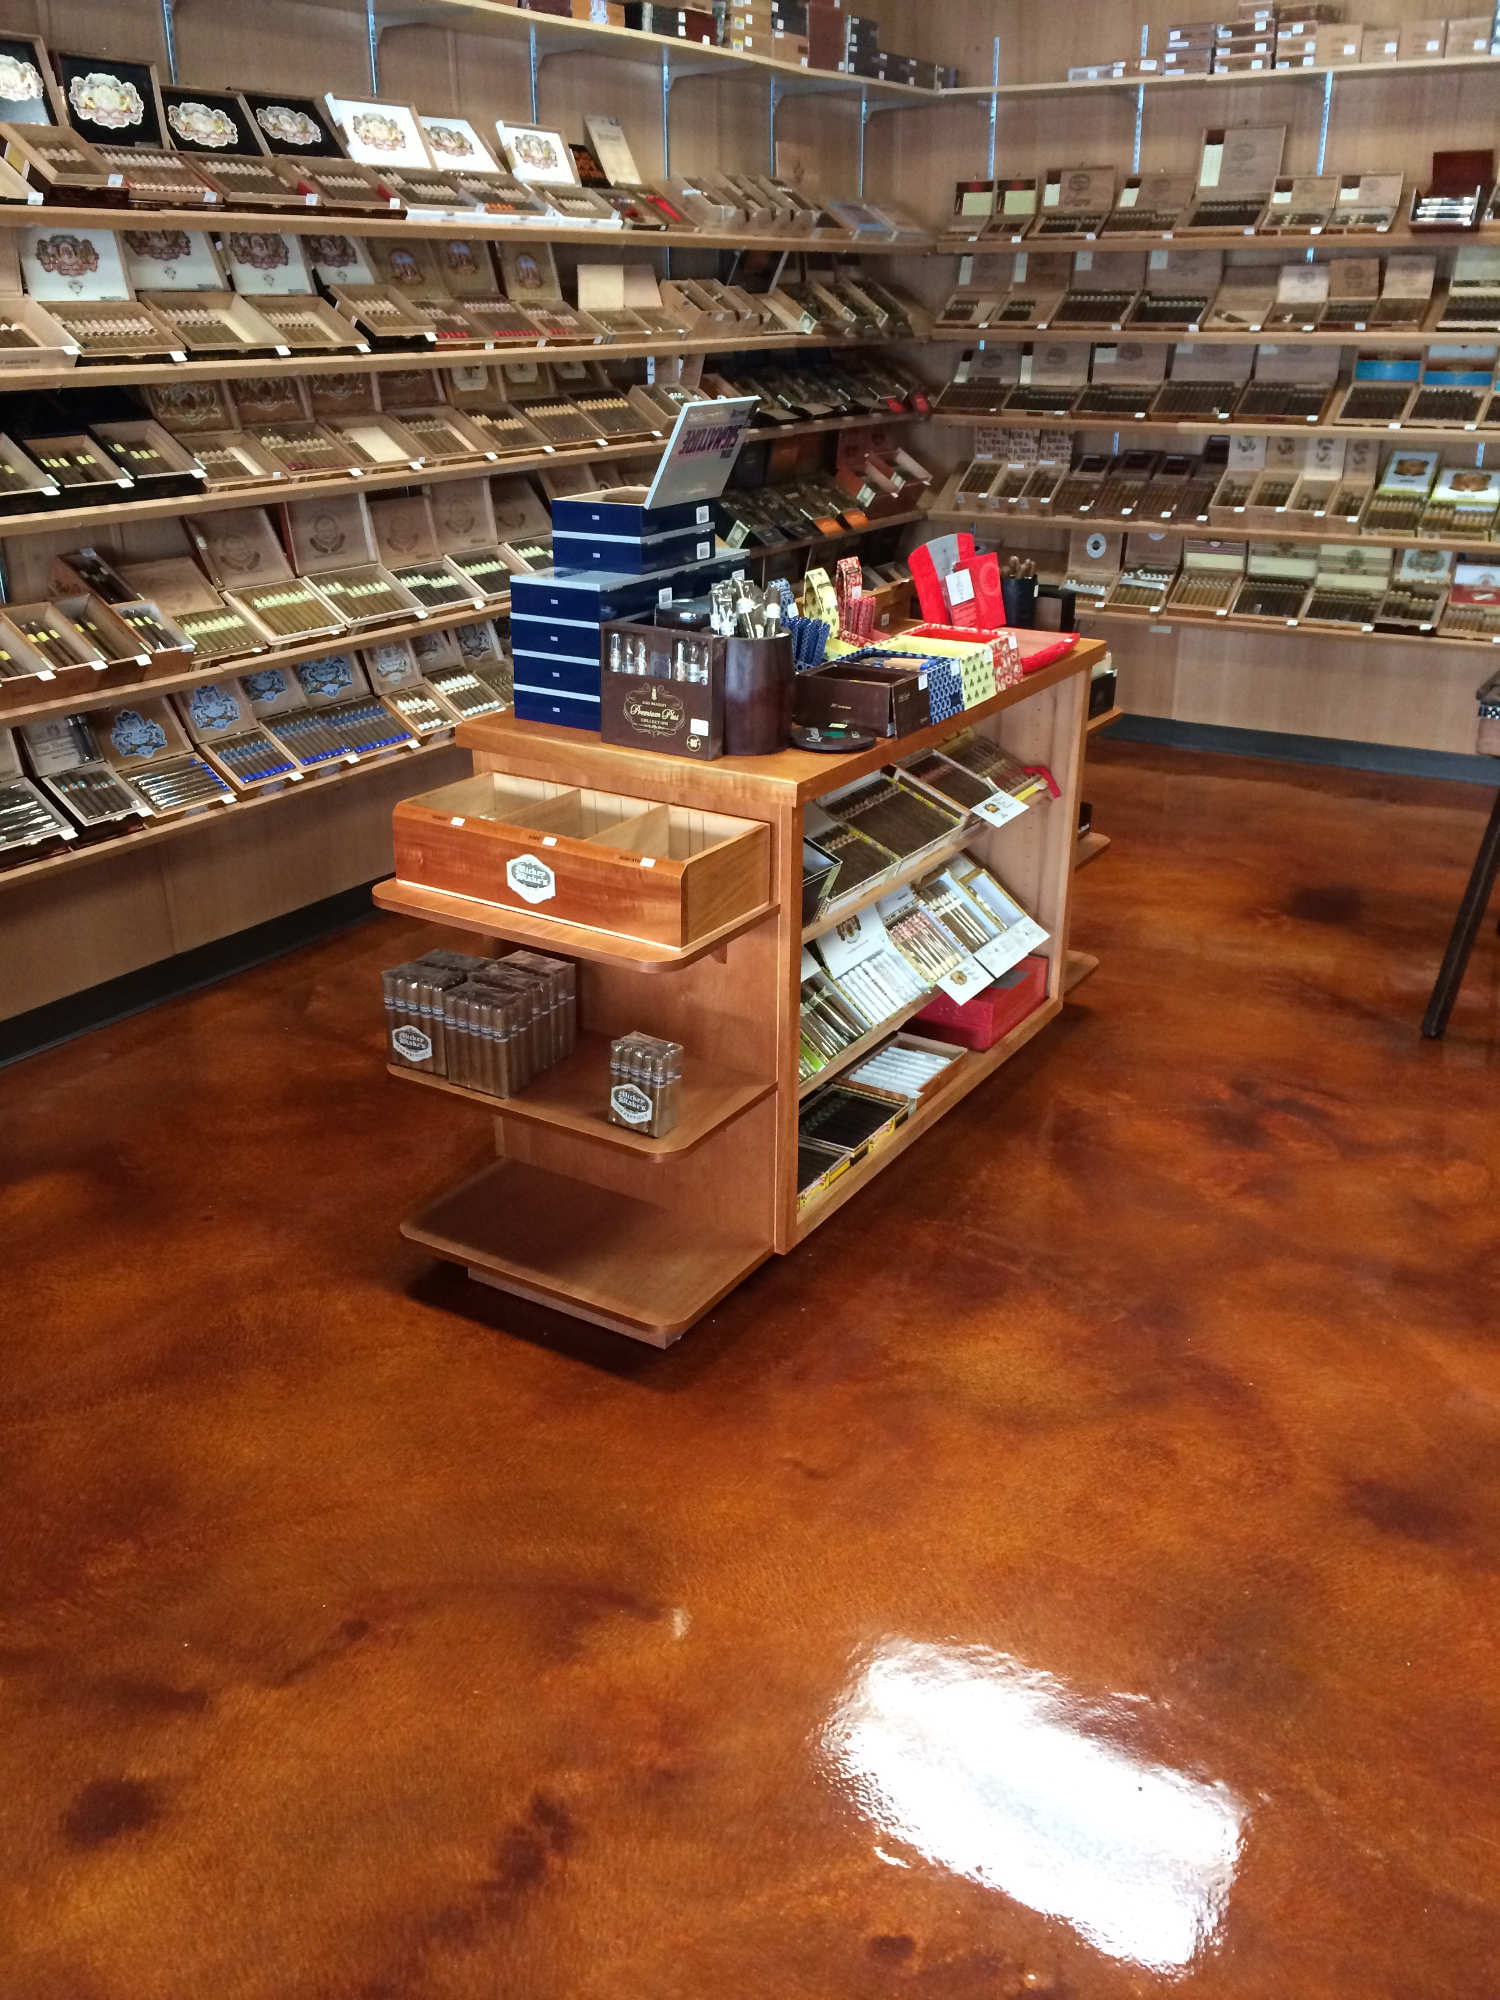 https://www.customconcretesolutionsct.com/wp-content/uploads/2019/04/Milford-Cigar.jpg